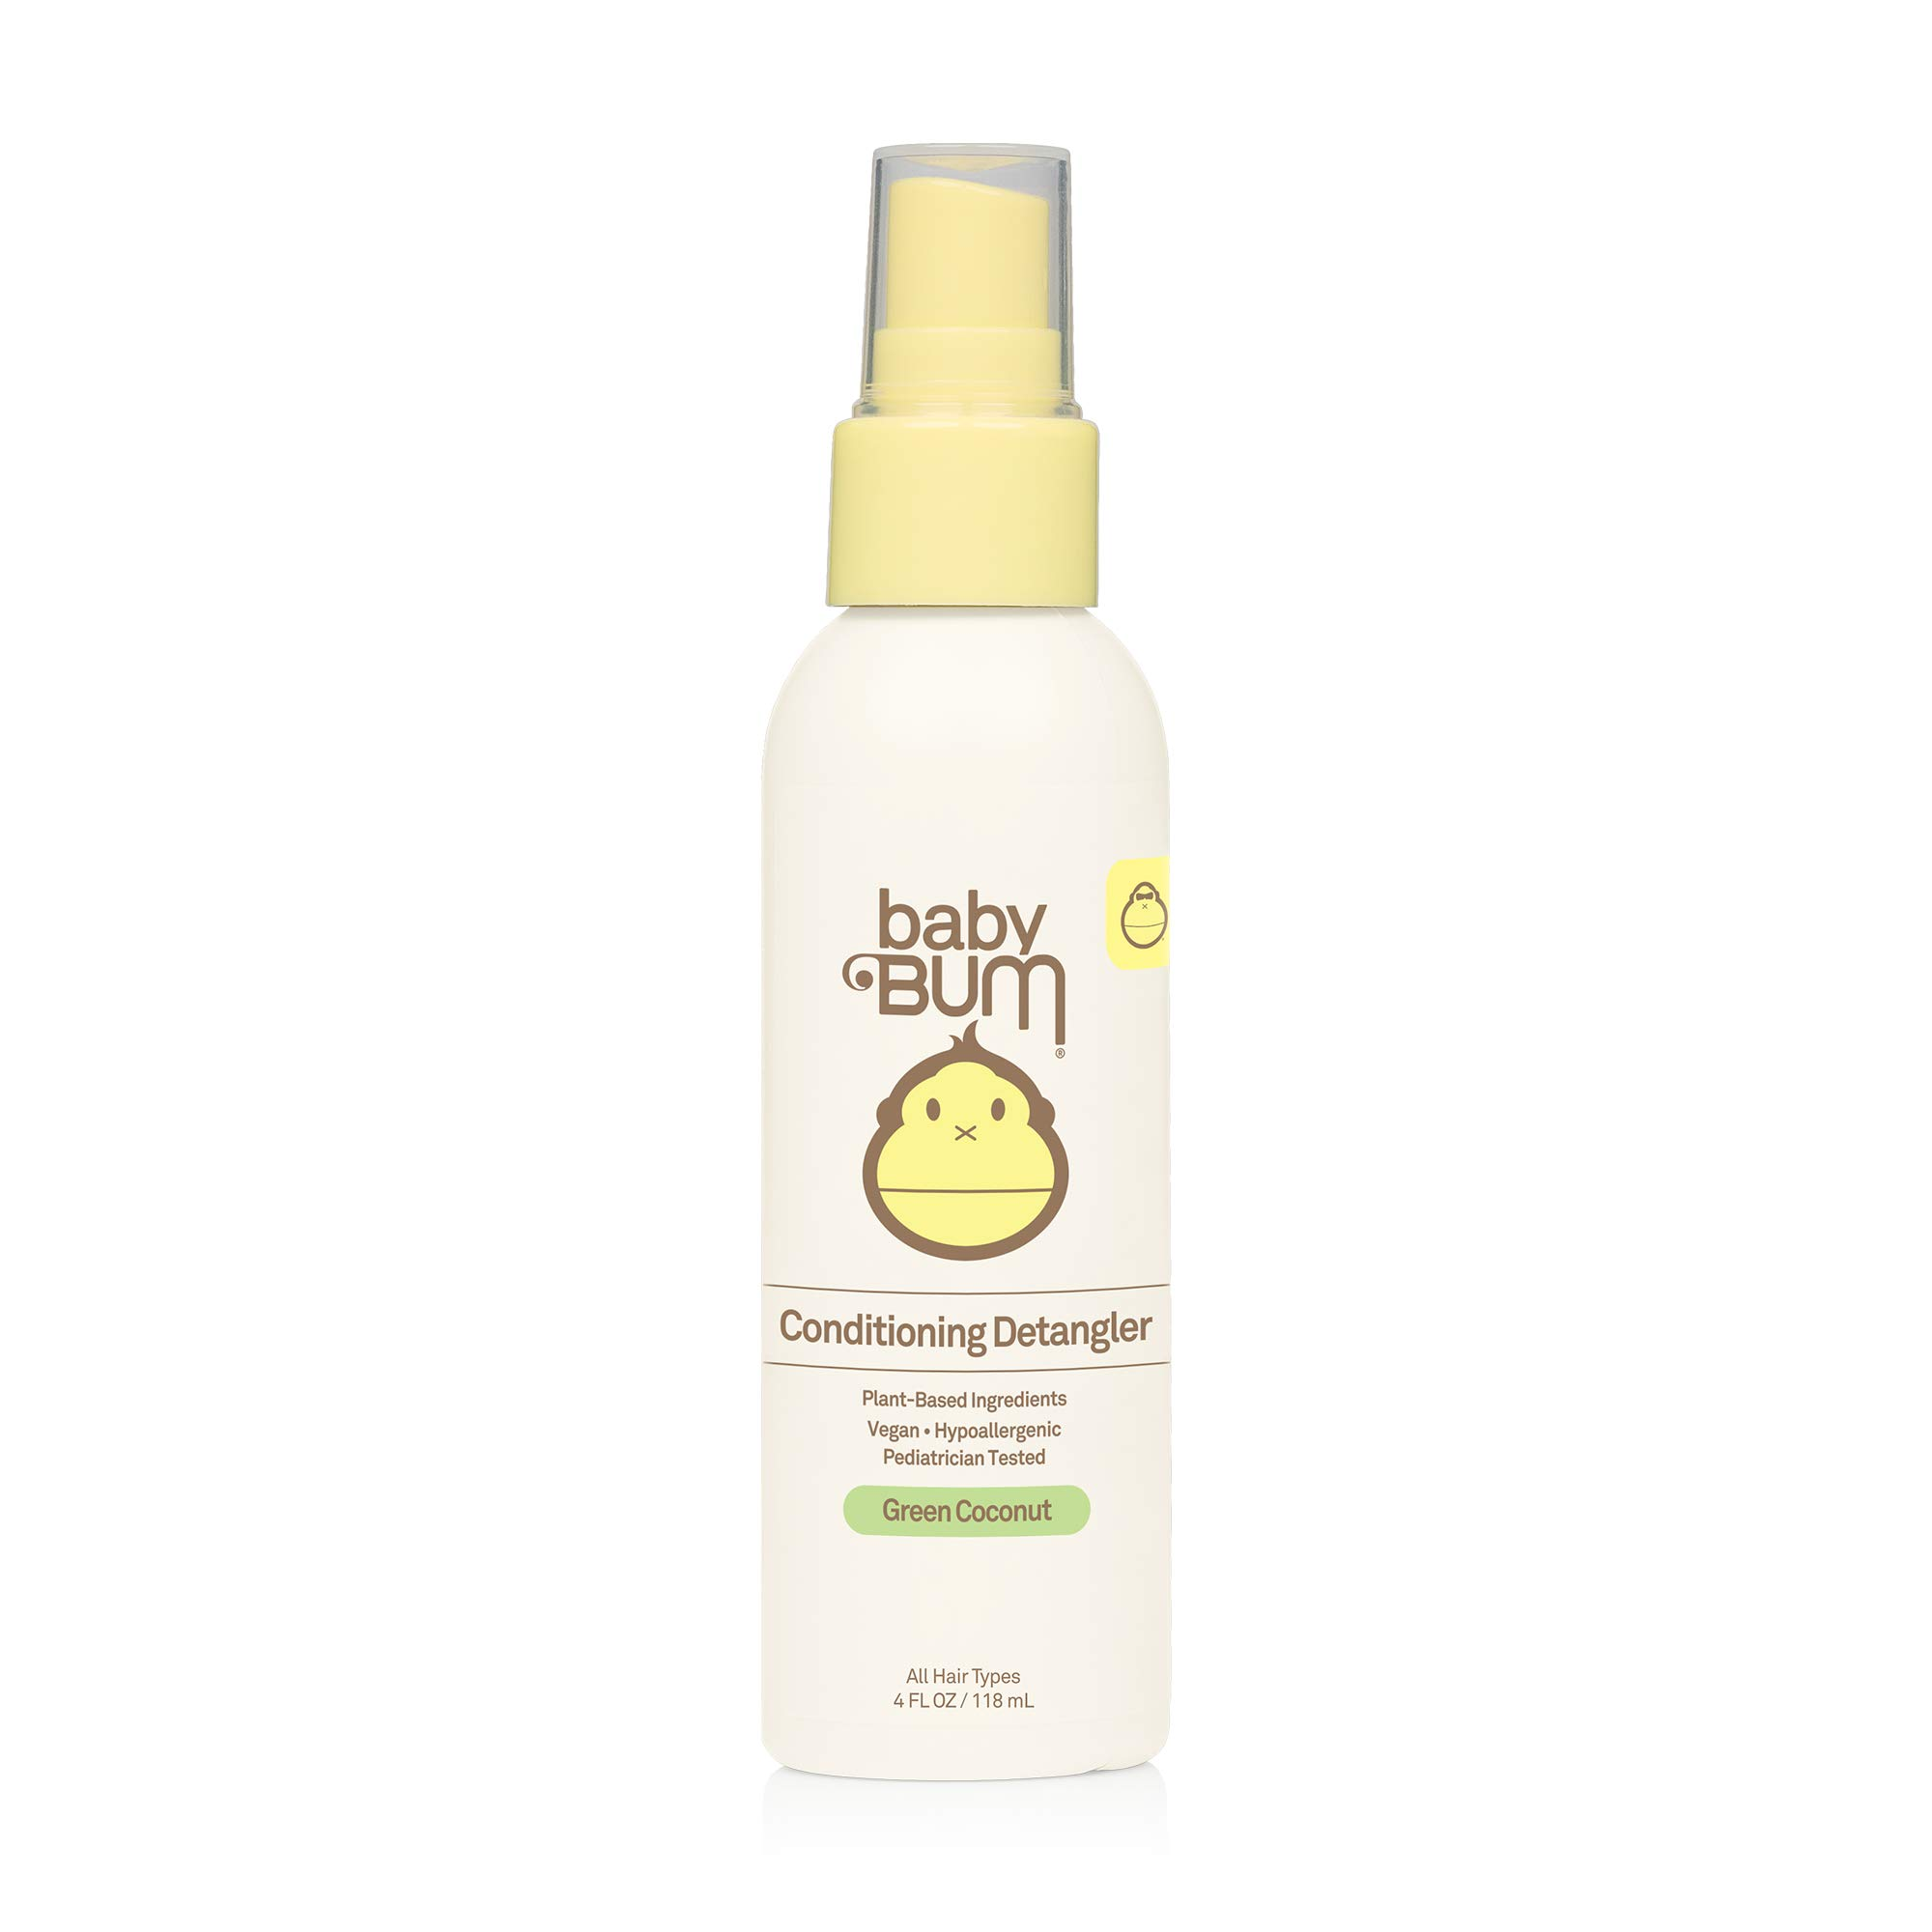 Baby Bum Conditioning Detangler Spray I Leave-In Conditioner Treatment with Soothing Coconut Oil, Natural Fragrance, Gluten Free and Vegan I 4 FL OZ